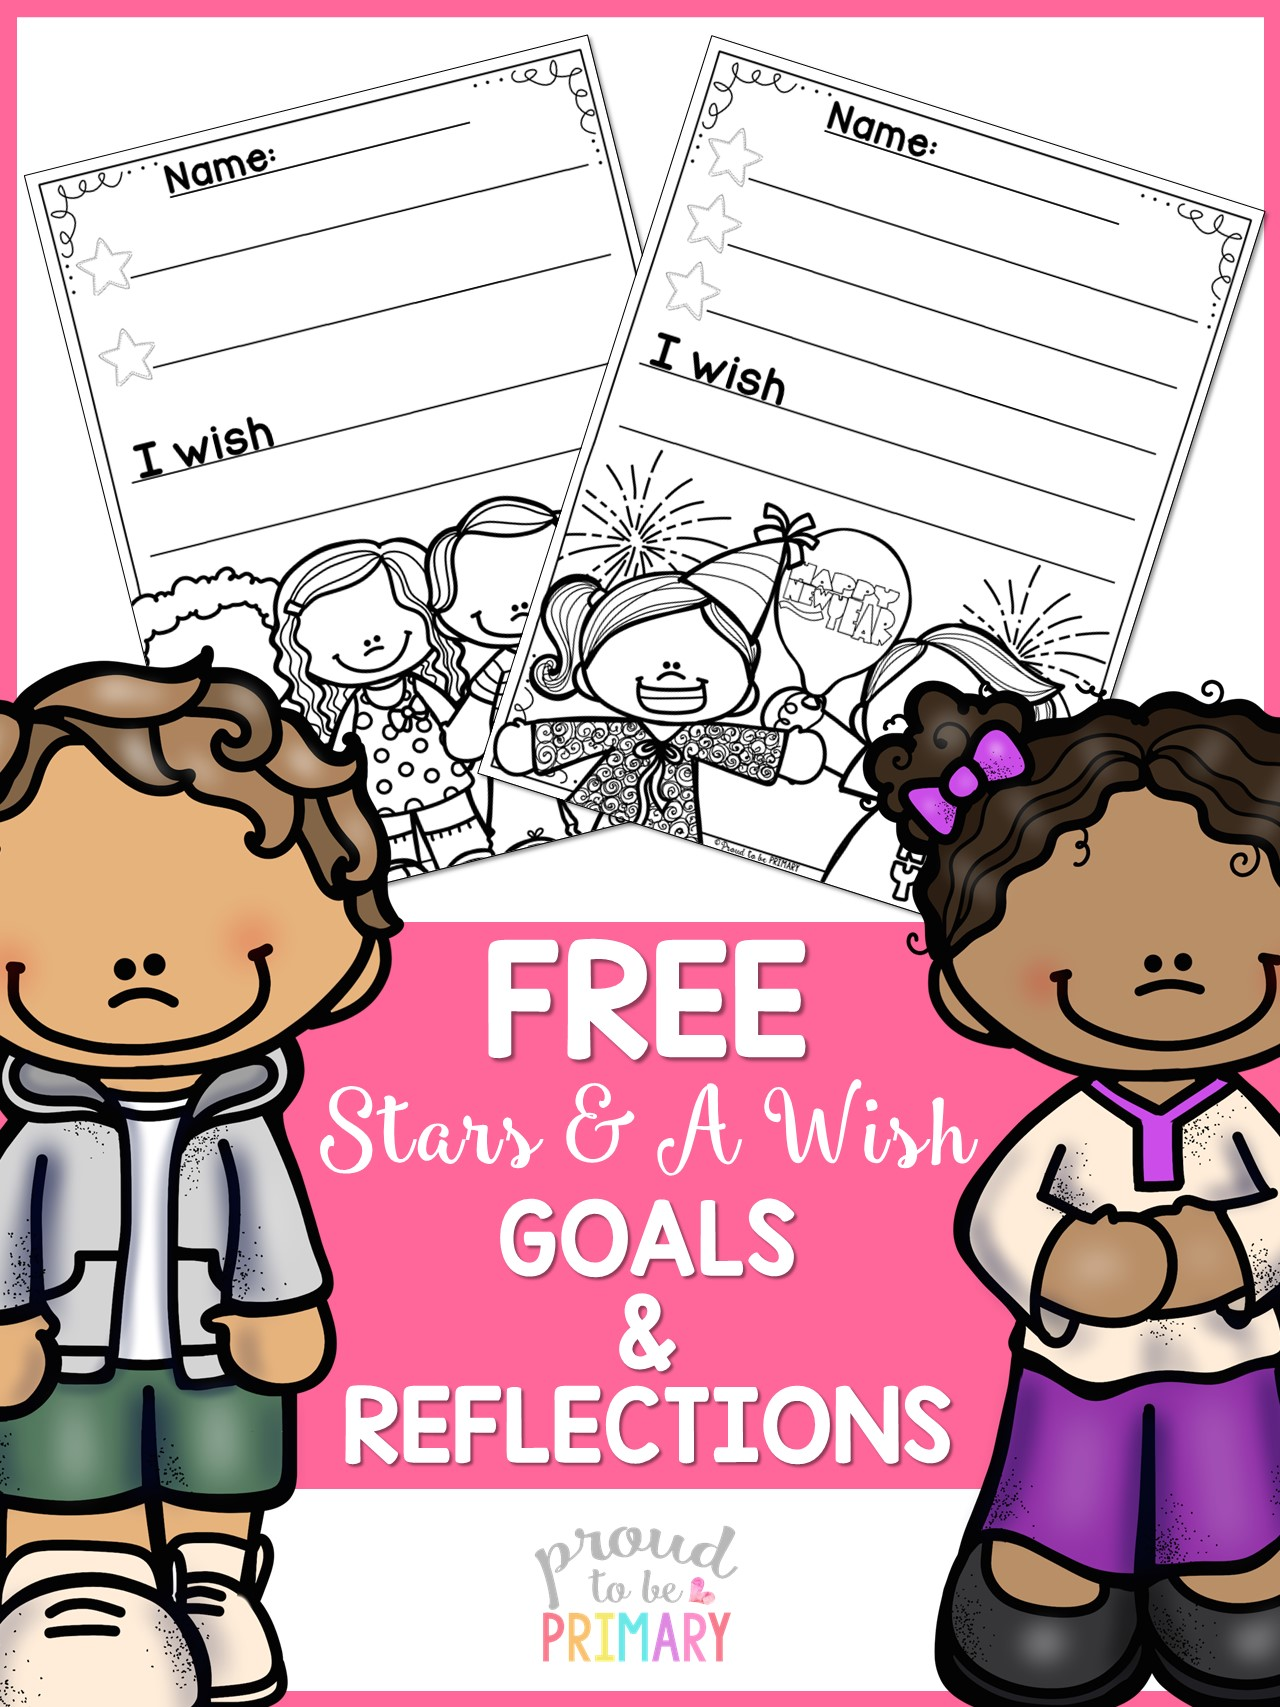 teaching responsibility - free stars and wish goal setting templates